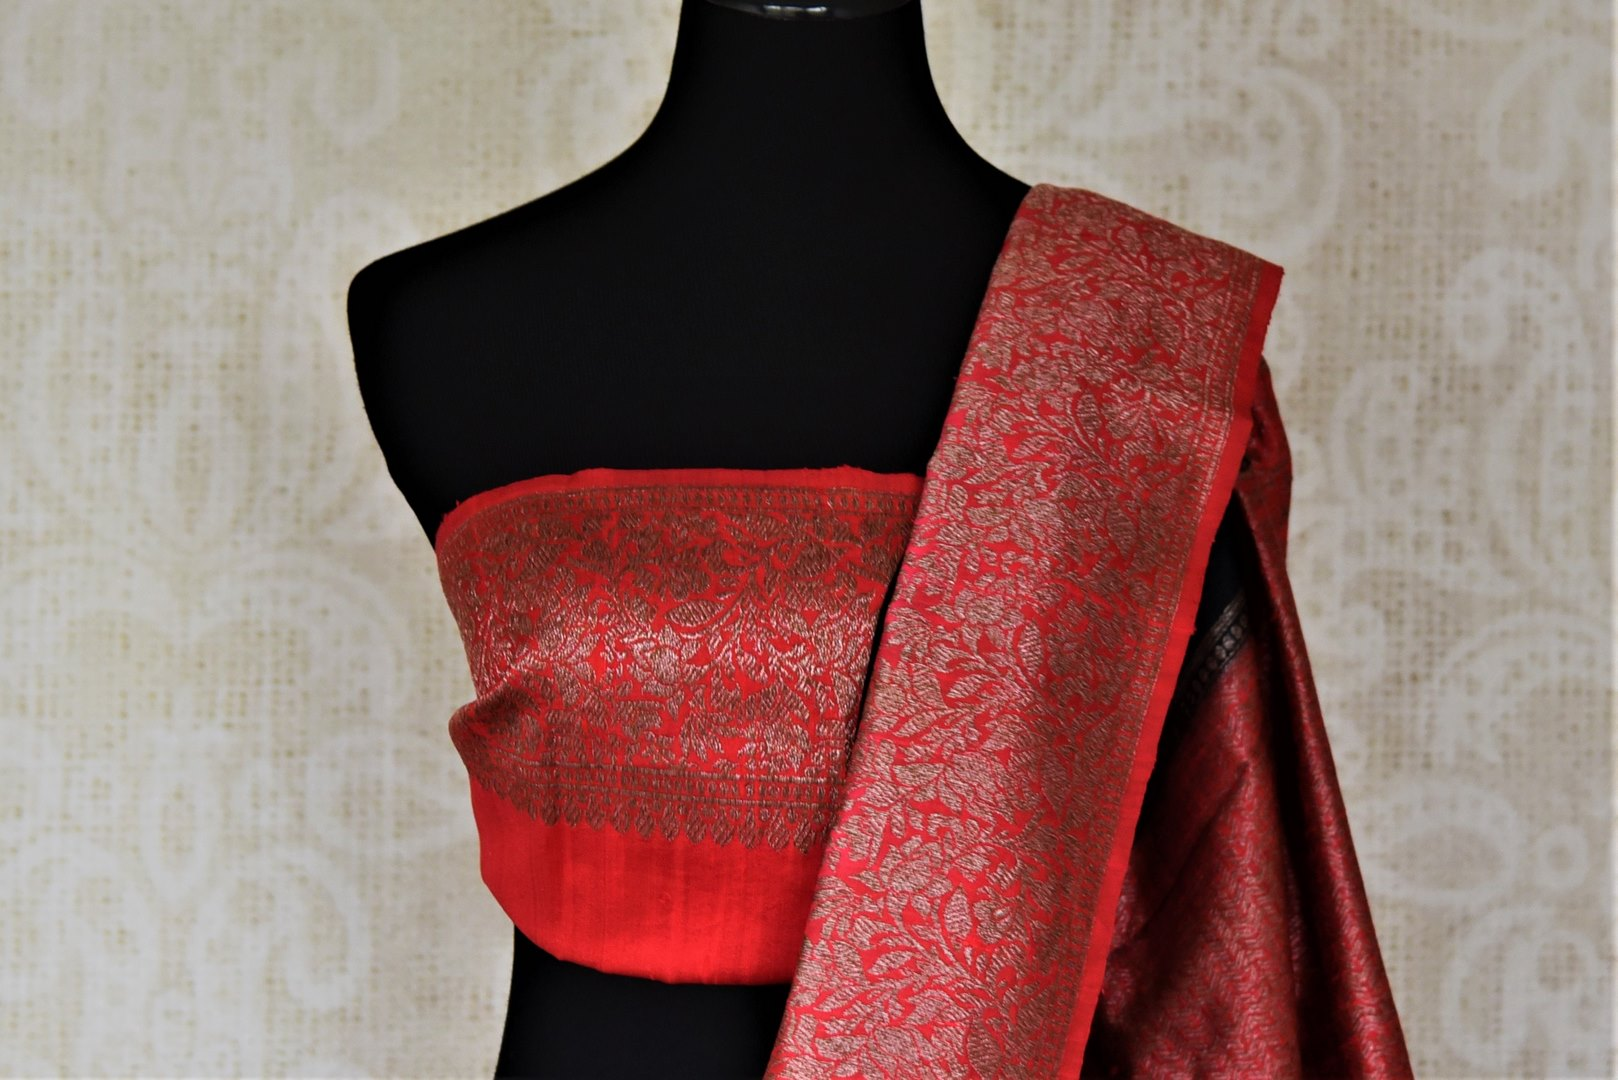 Buy black tussar Banarasi sari online in USA with zari buta and red zari border. Choose tasteful handloom saris for special occasions from Pure Elegance. Our exclusive Indian fashion store has a myriad of exquisite pure silk saris, tussar sarees, Banarasi sarees for Indian women in USA.-blouse pallu